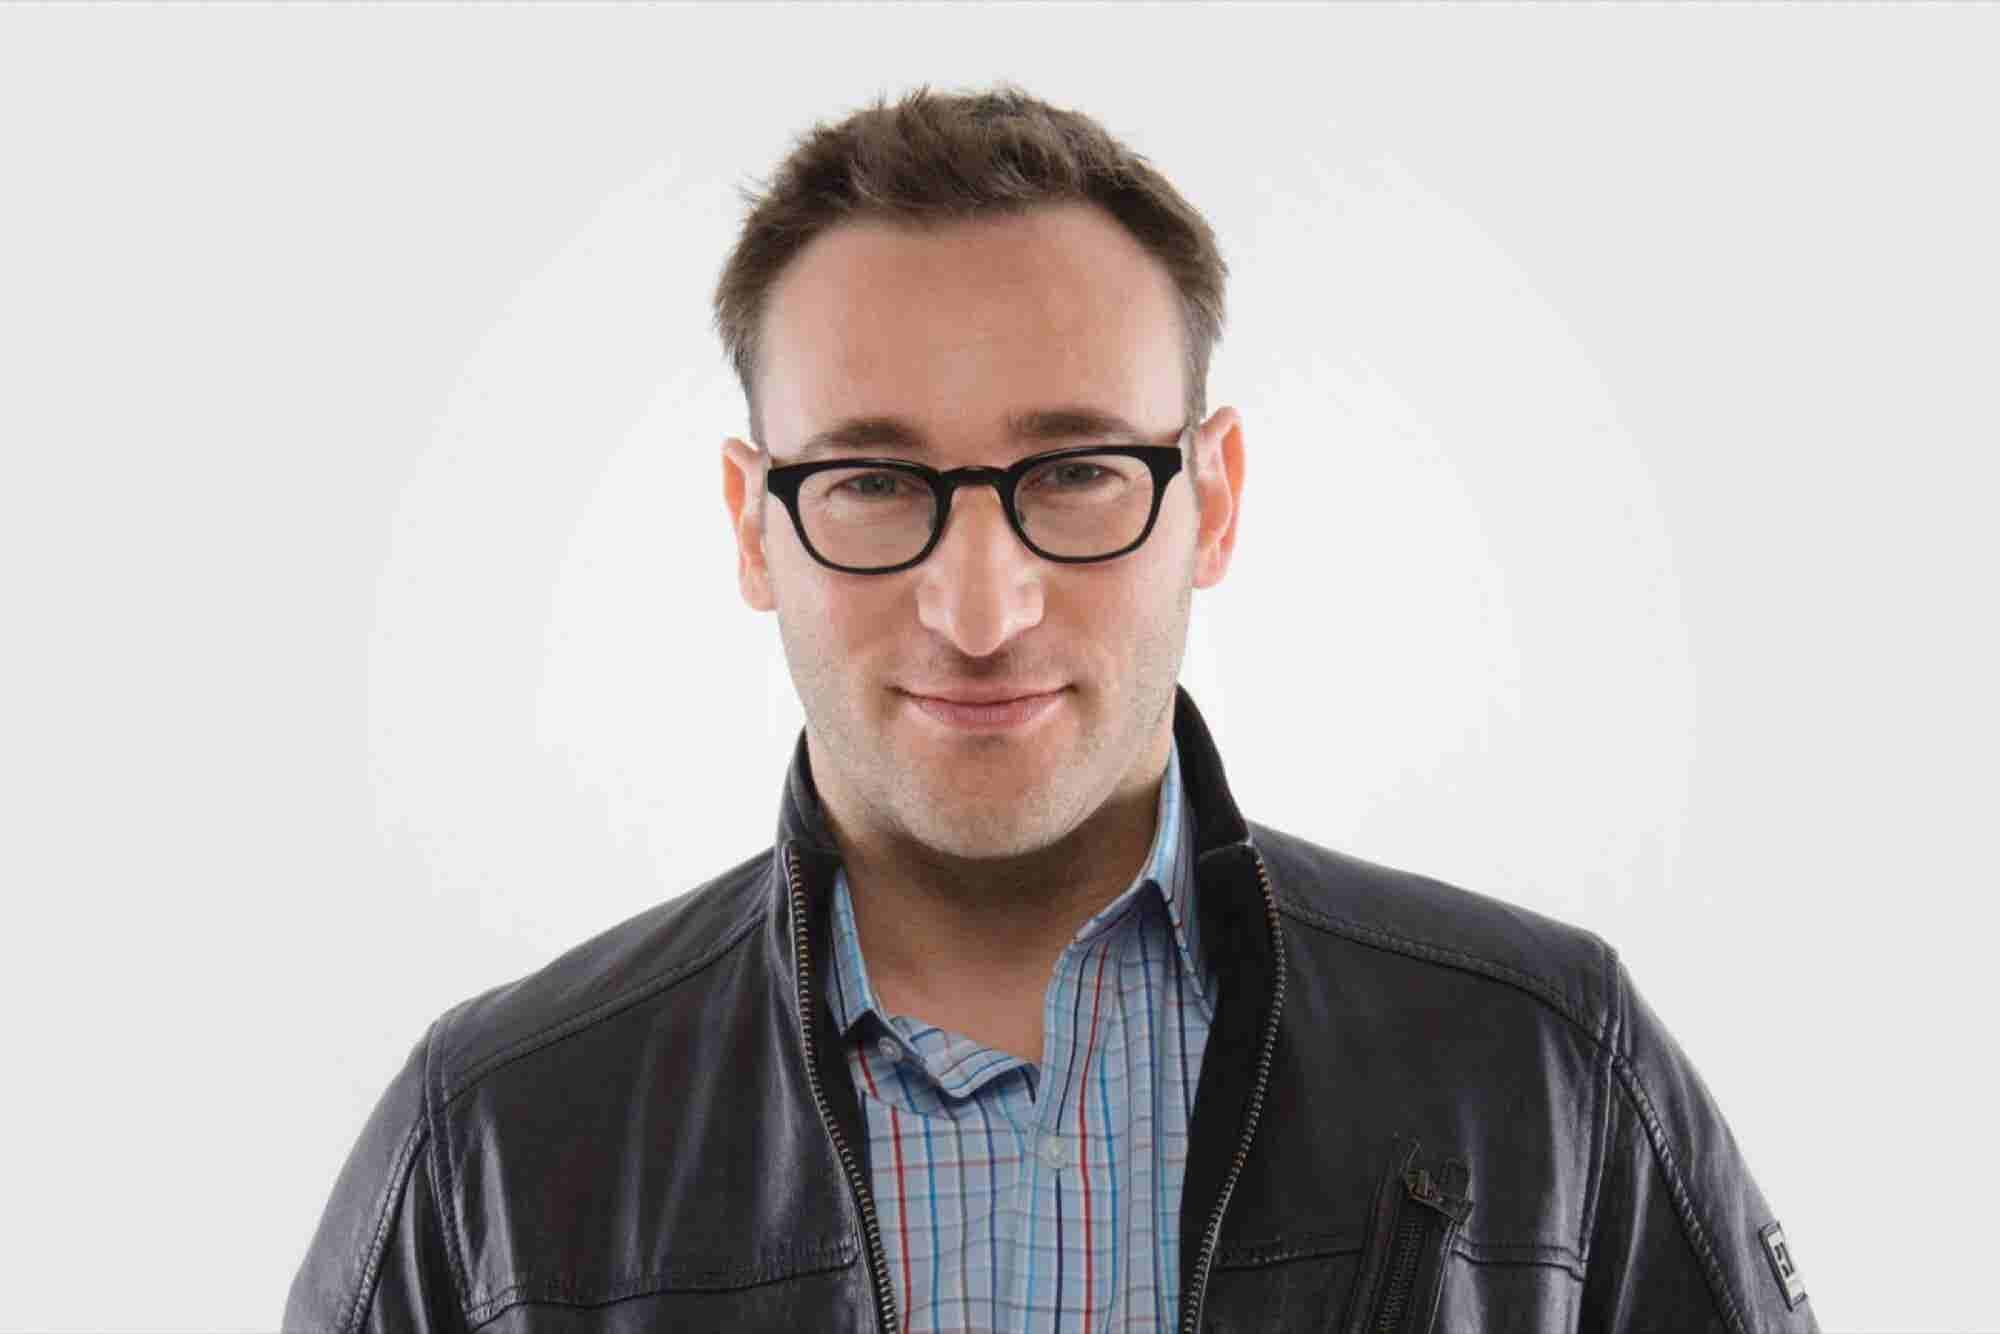 Simon Sinek: Why Leadership is Better 'Together'